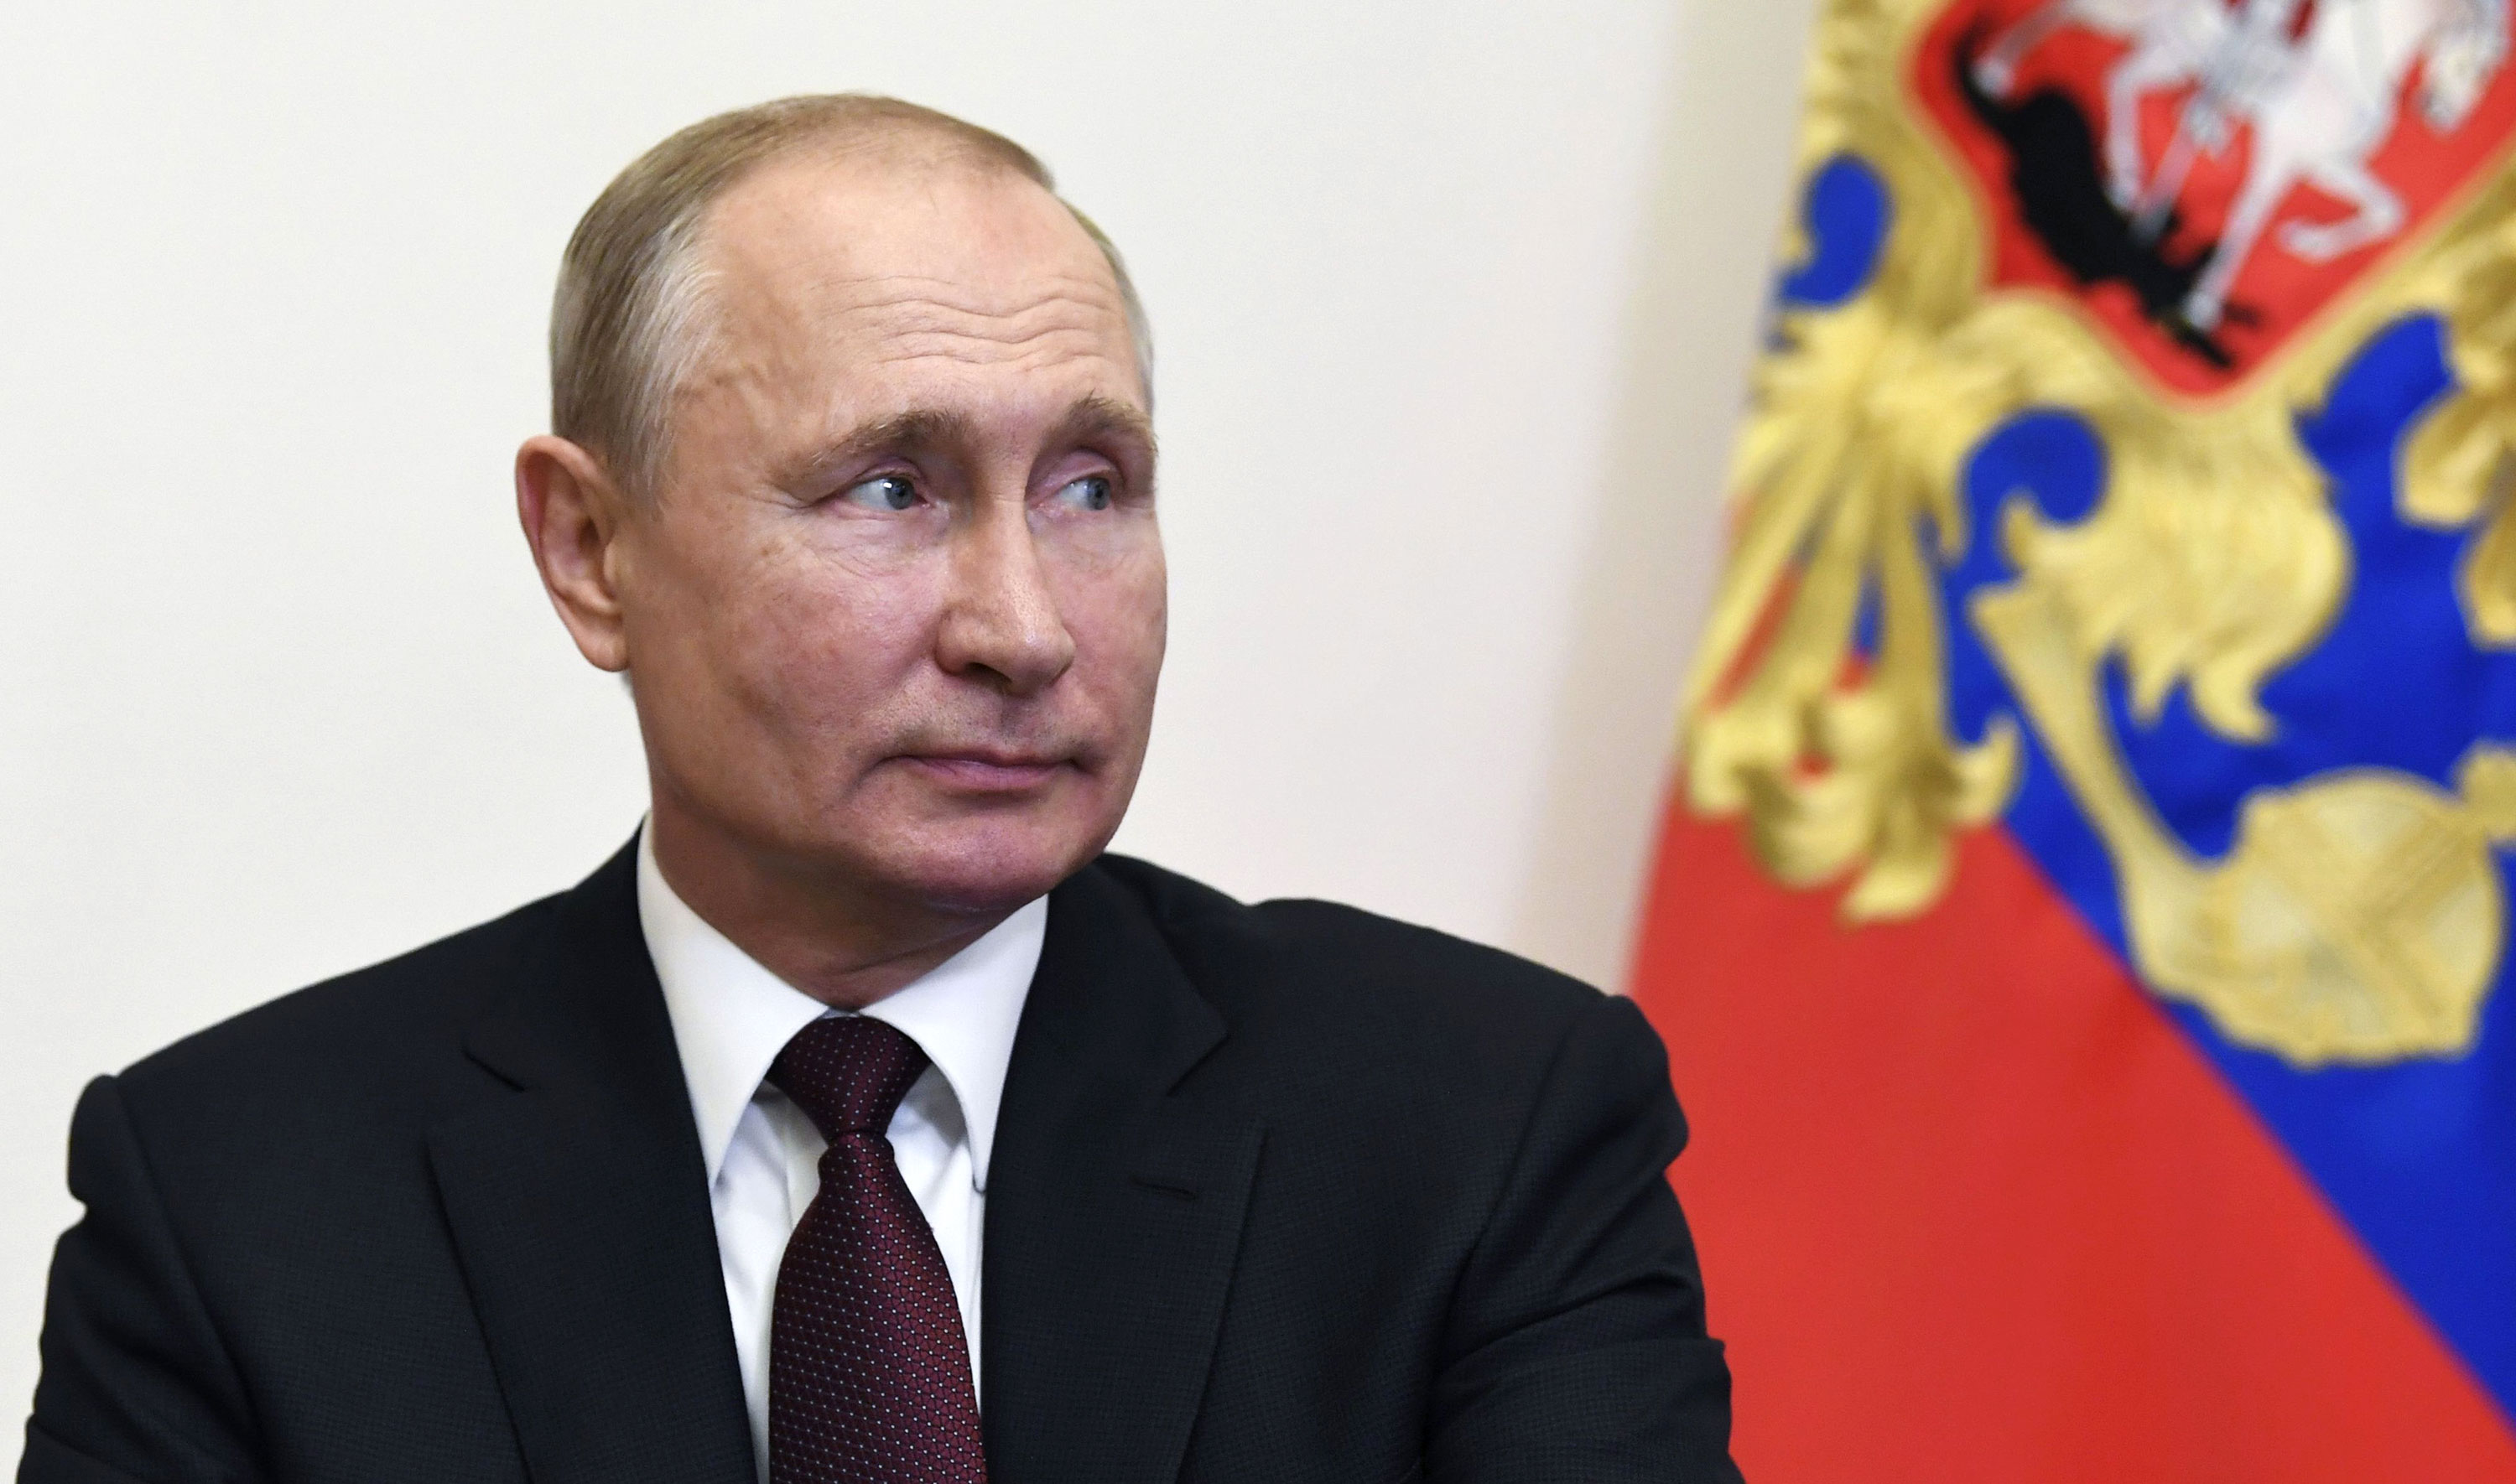 Russian President Vladimir Putin attends a meeting on June 3 in Moscow.